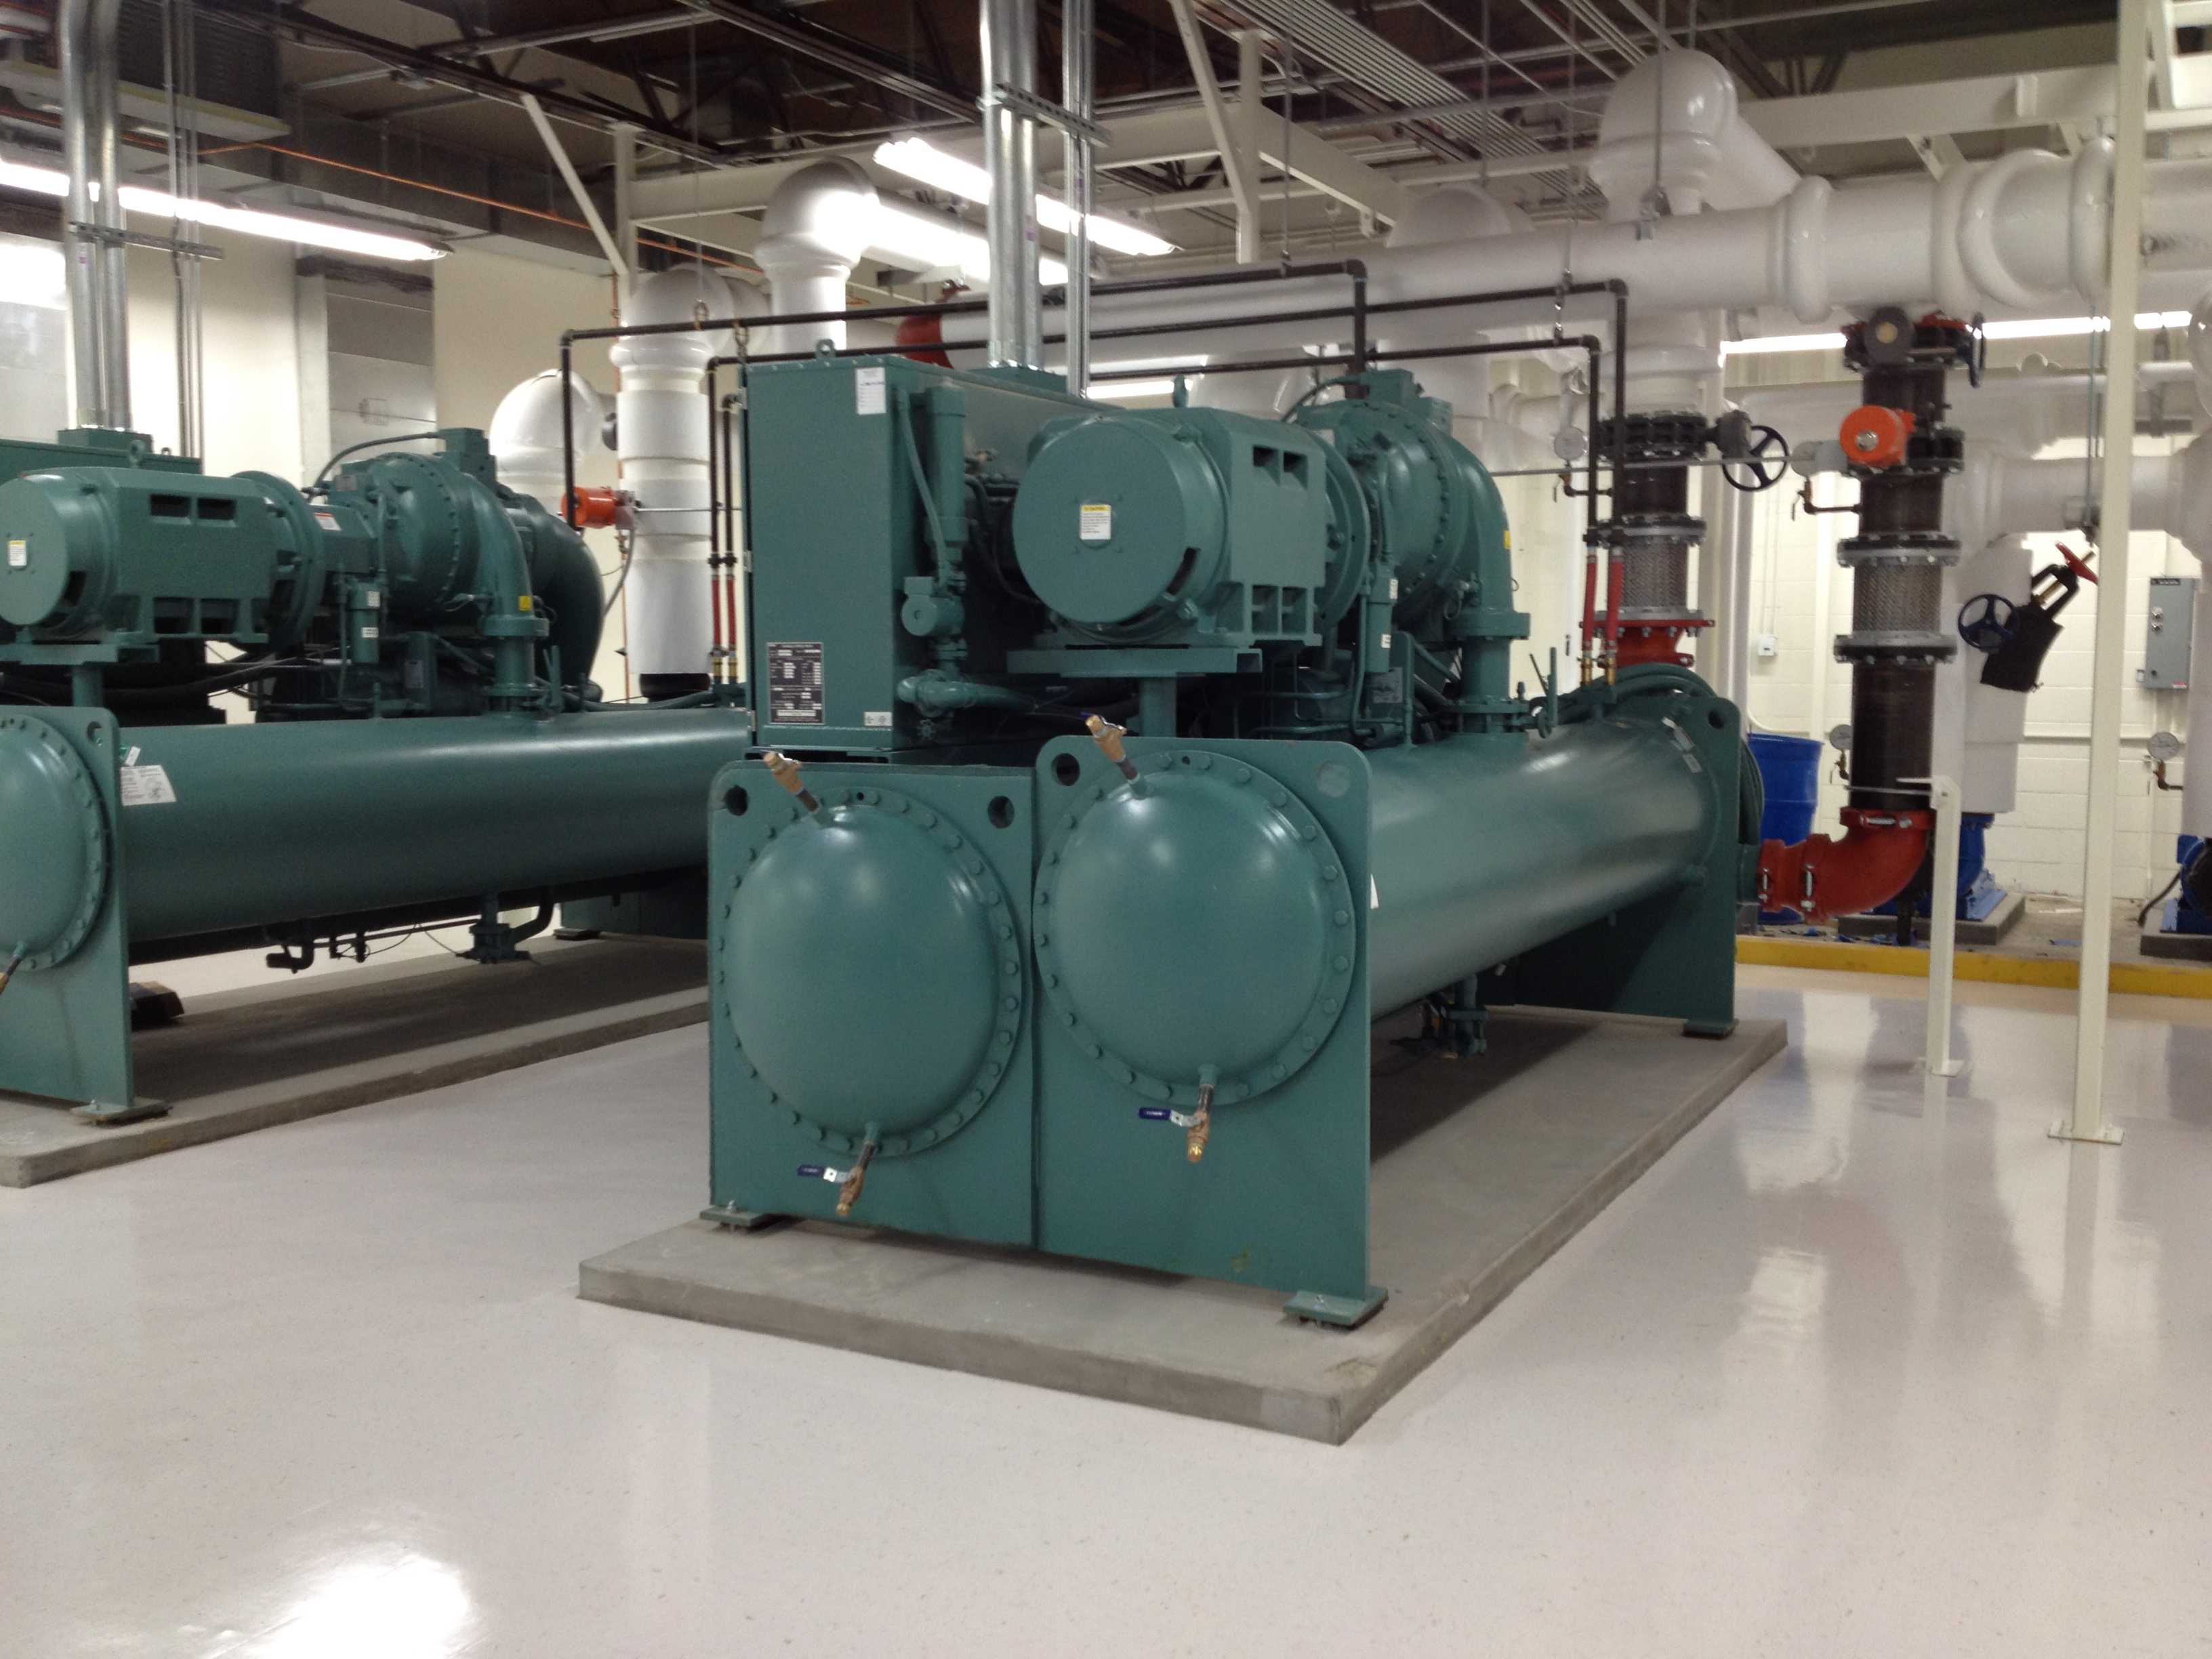 Chillers moreover In Row Cooling likewise Cogeneration Presentation besides Apc Rack Cooling besides Air Handling Units. on heat and cooling units